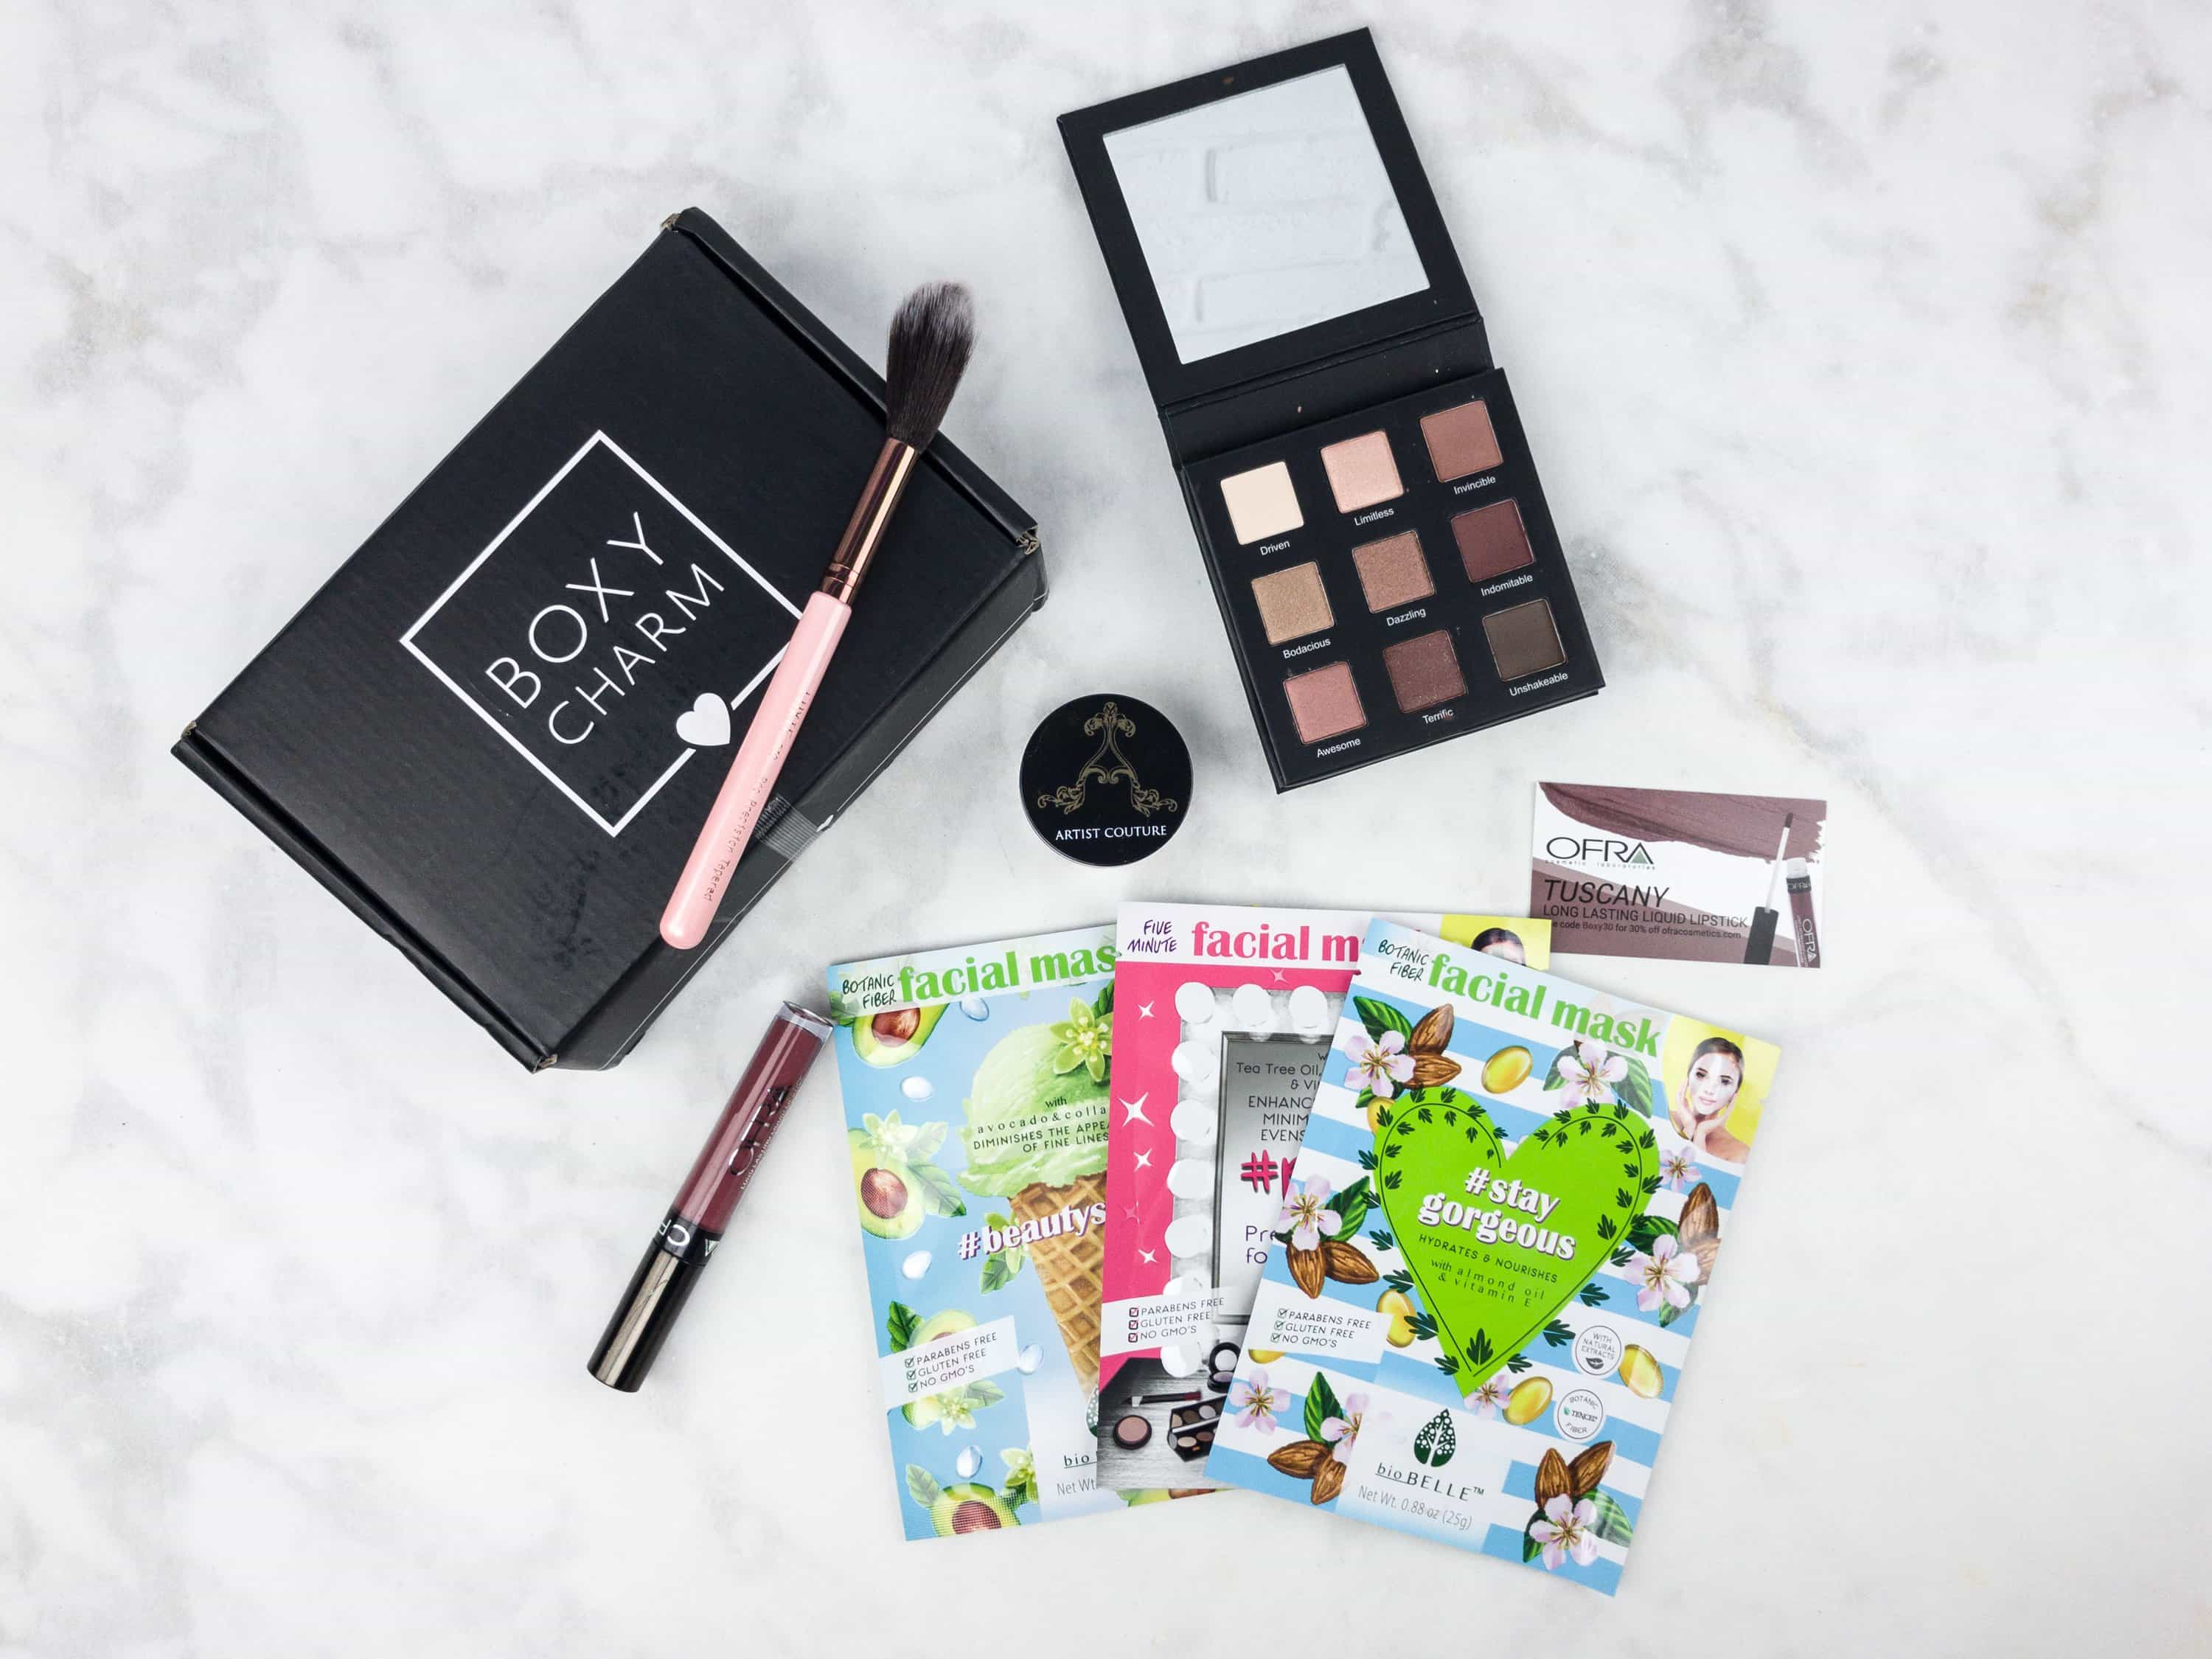 Boxycharm June 2017 Subscription Box Review Hello